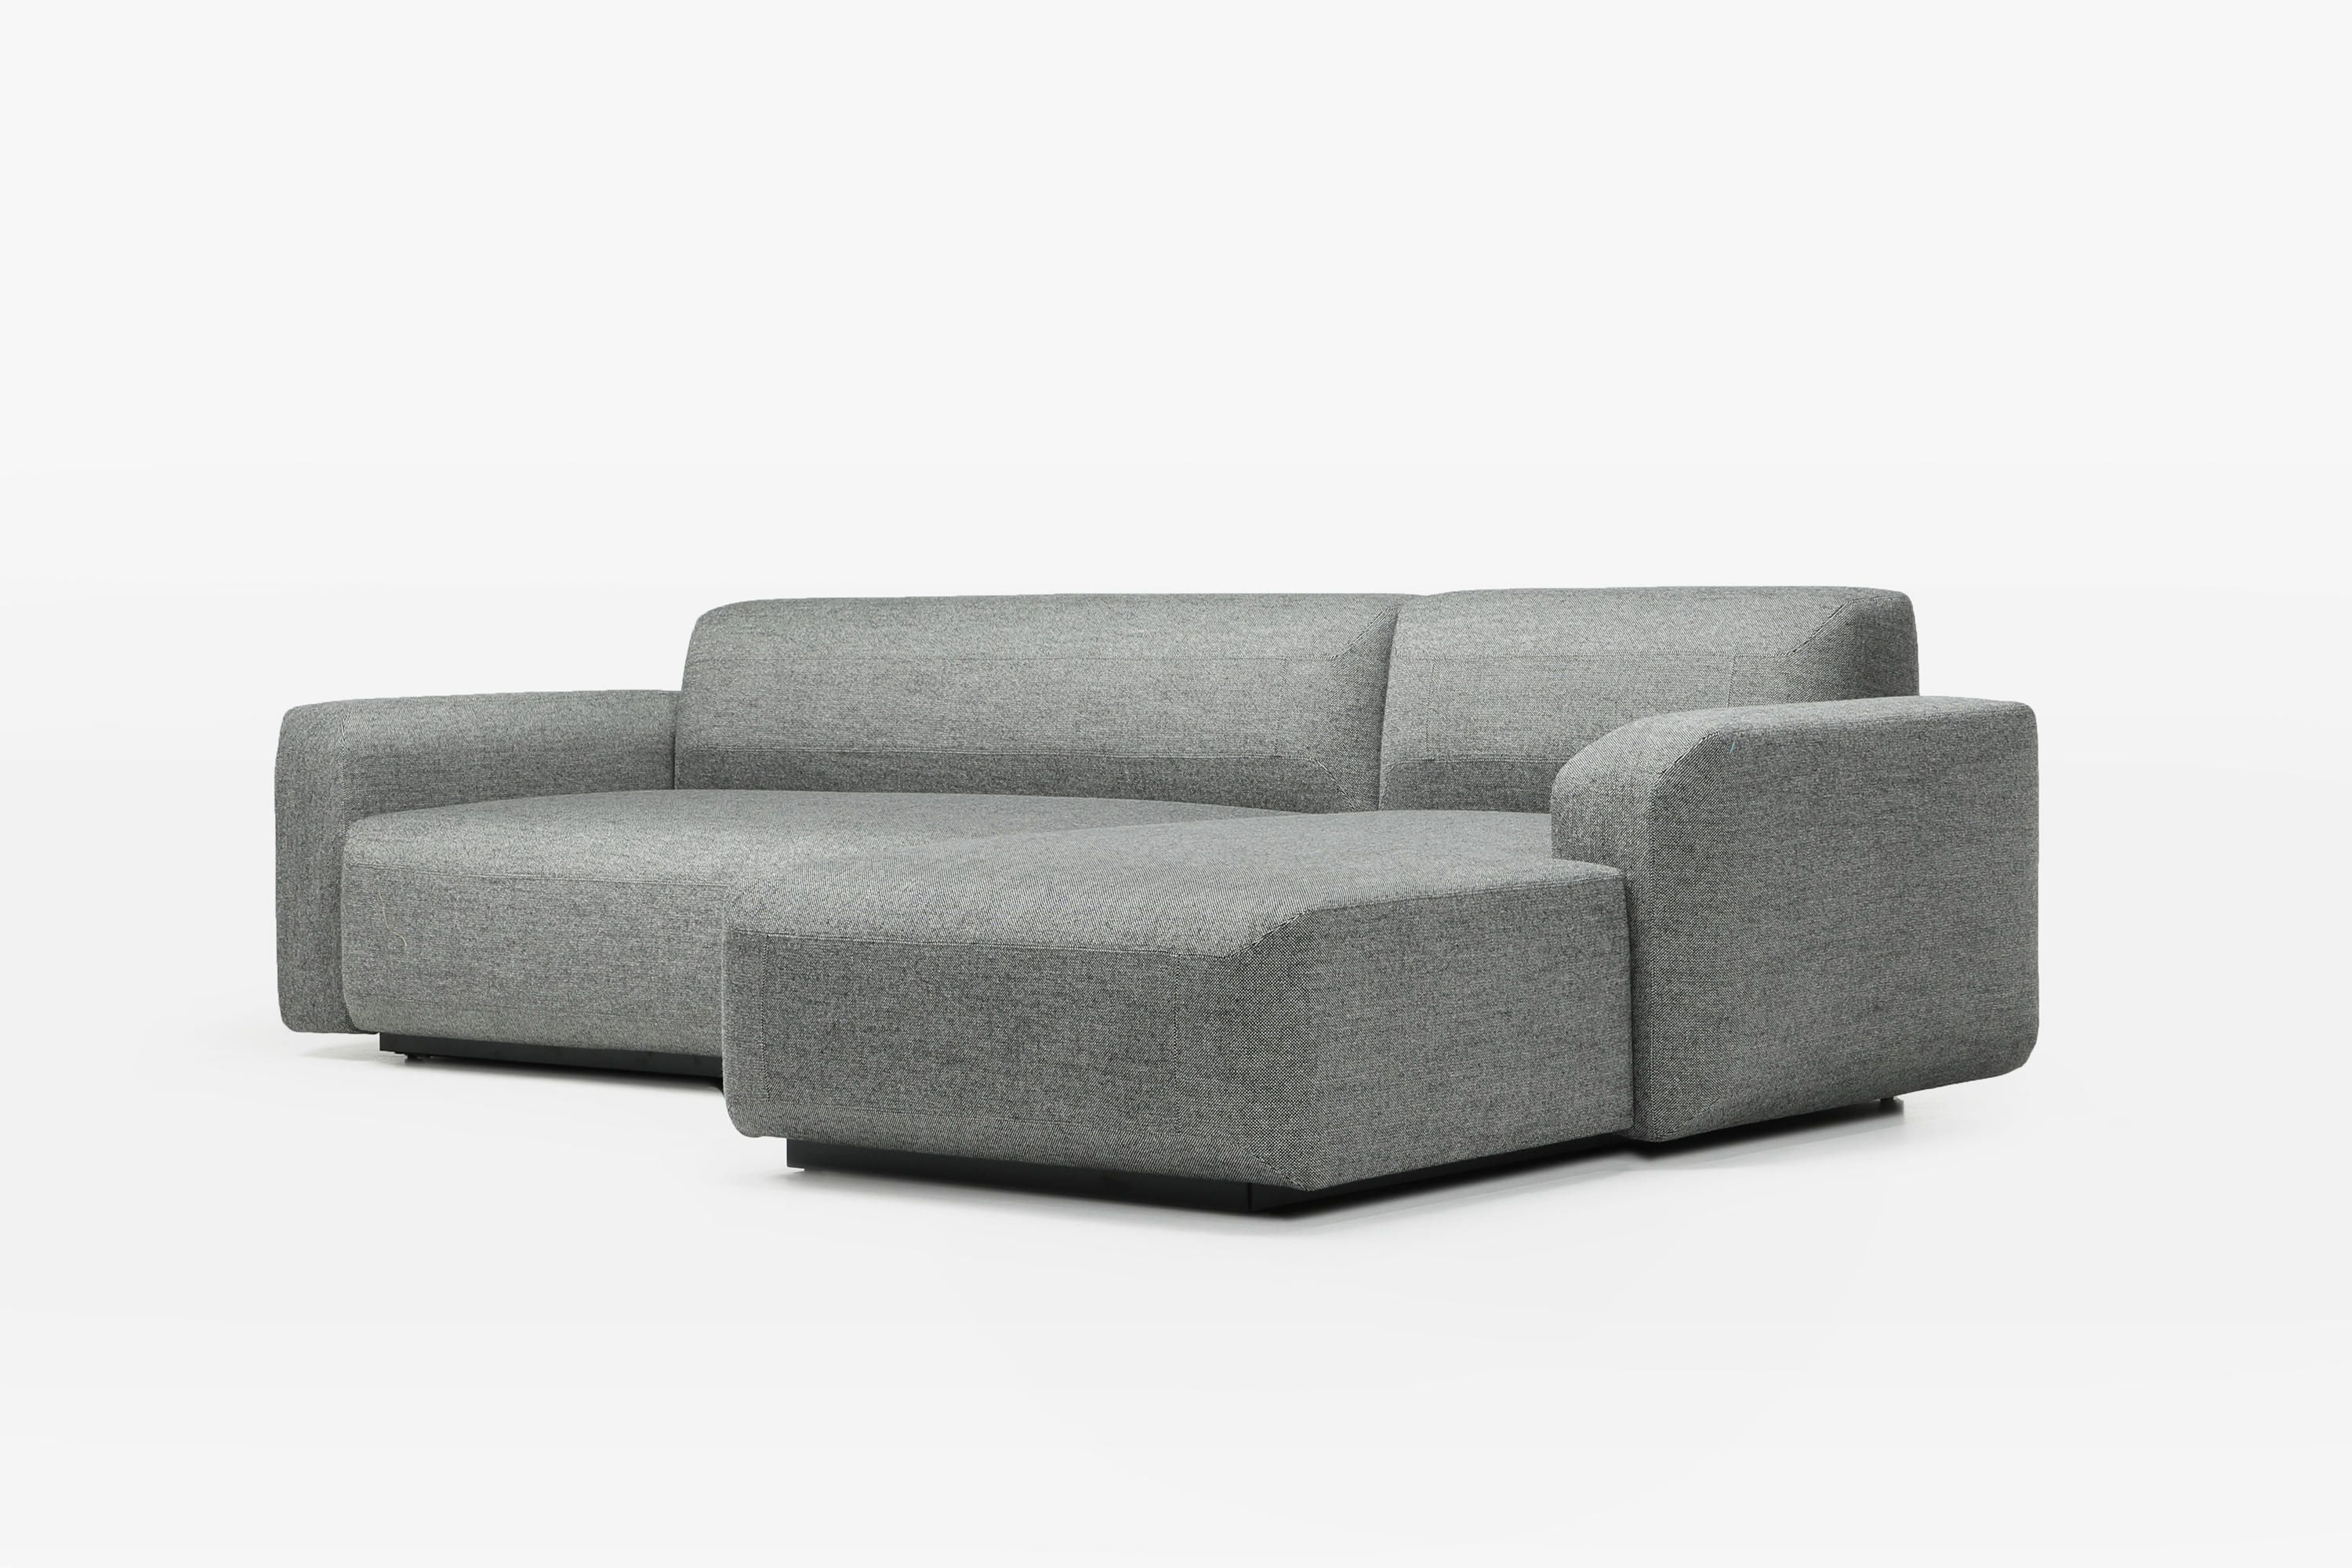 Fade Sofabed By Numen For Use For Prostoria Schlafsofa Sofa